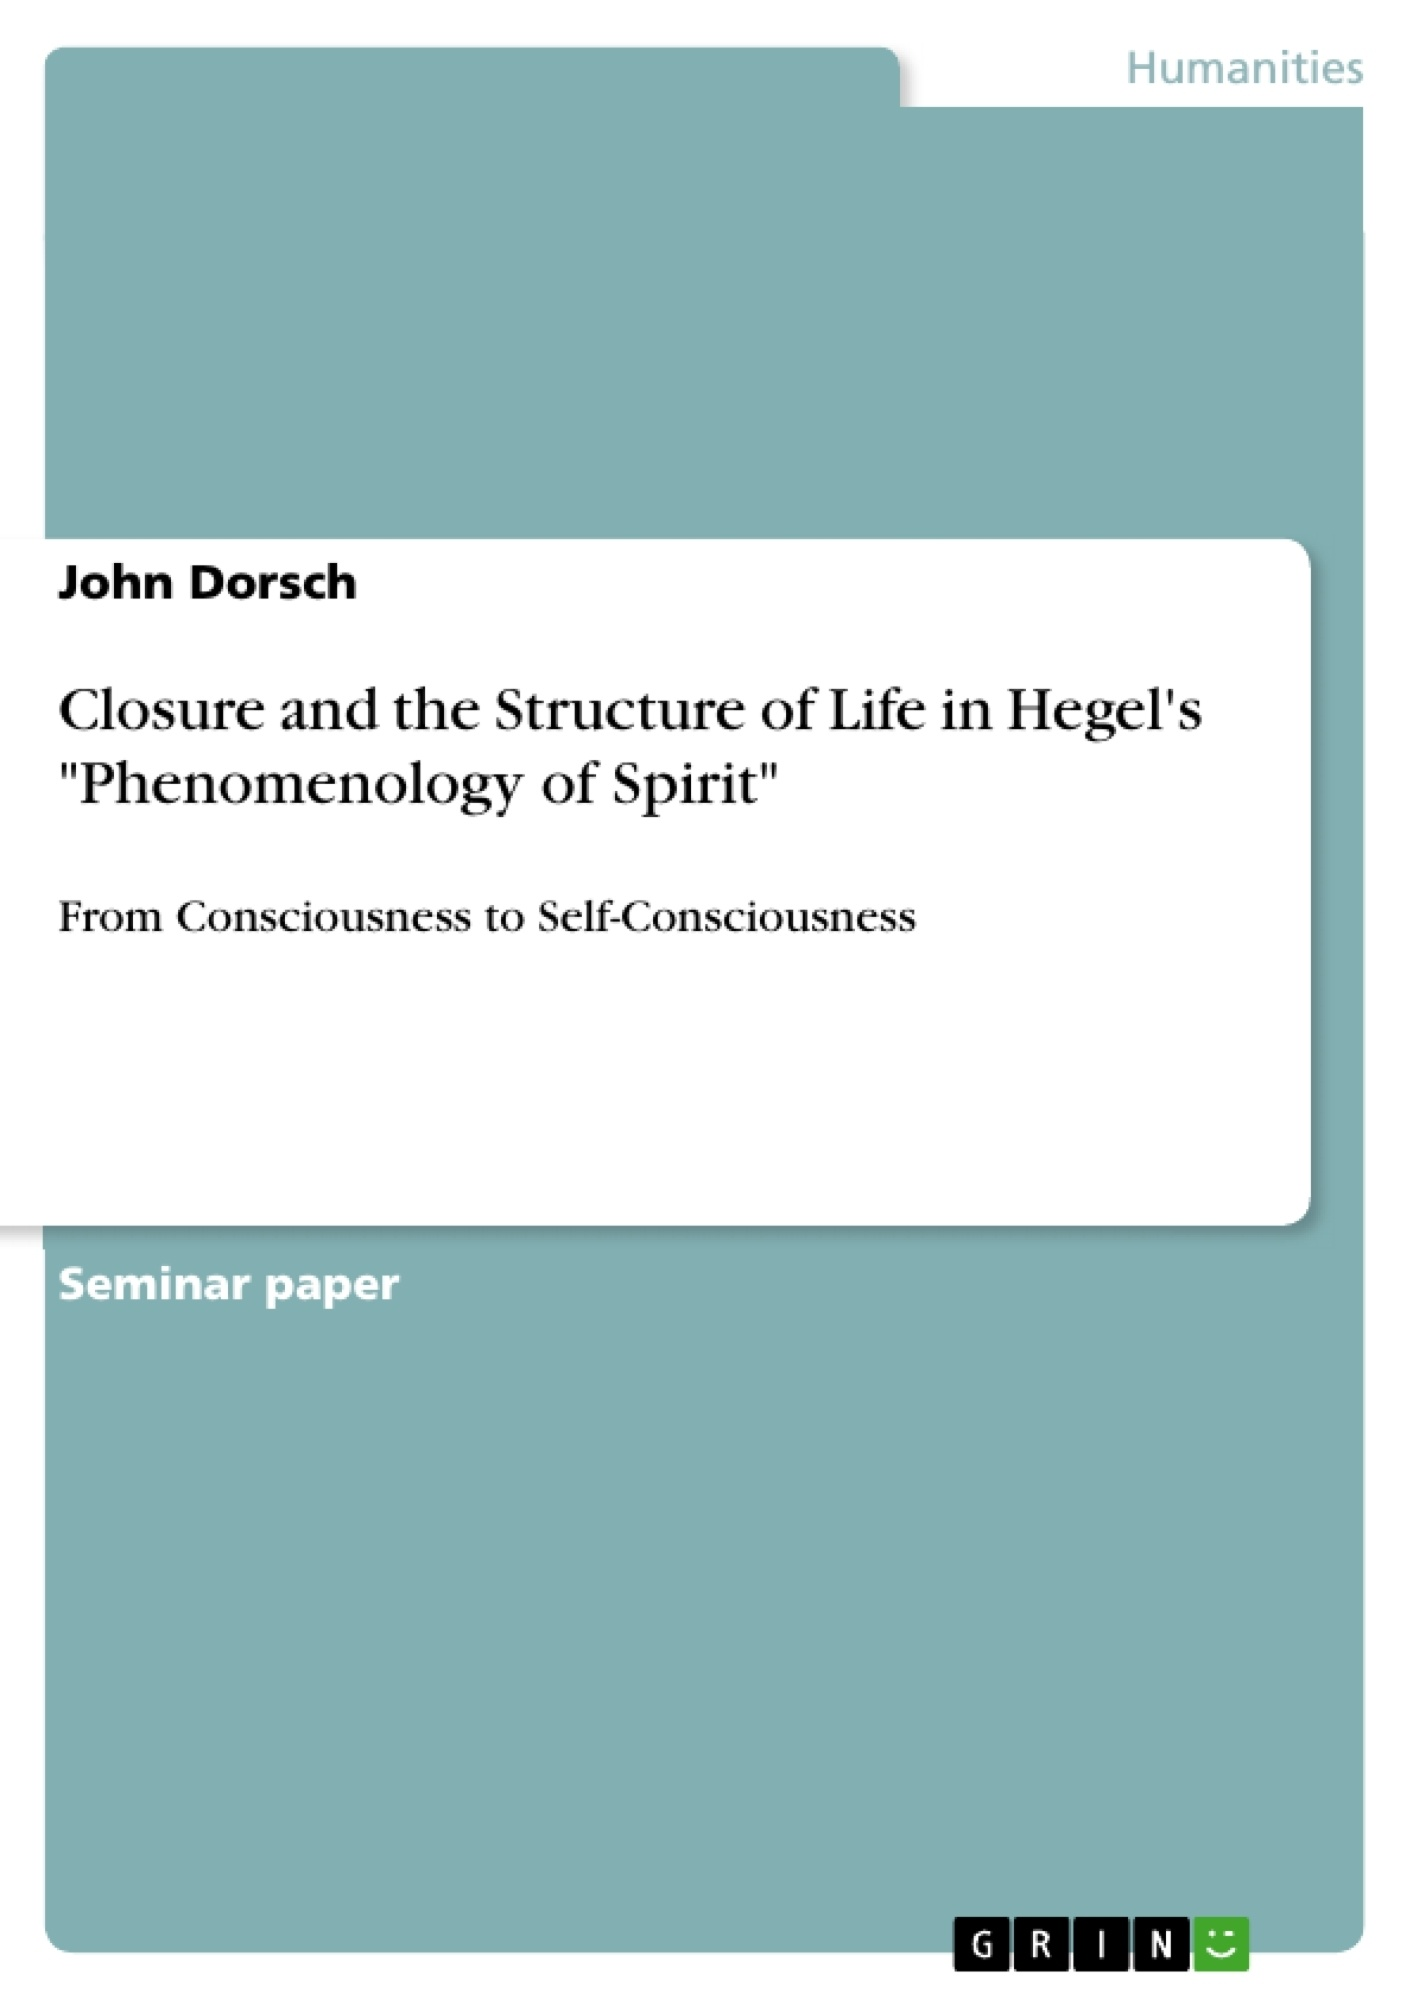 """Title: Closure and the Structure of Life in Hegel's """"Phenomenology of Spirit"""""""